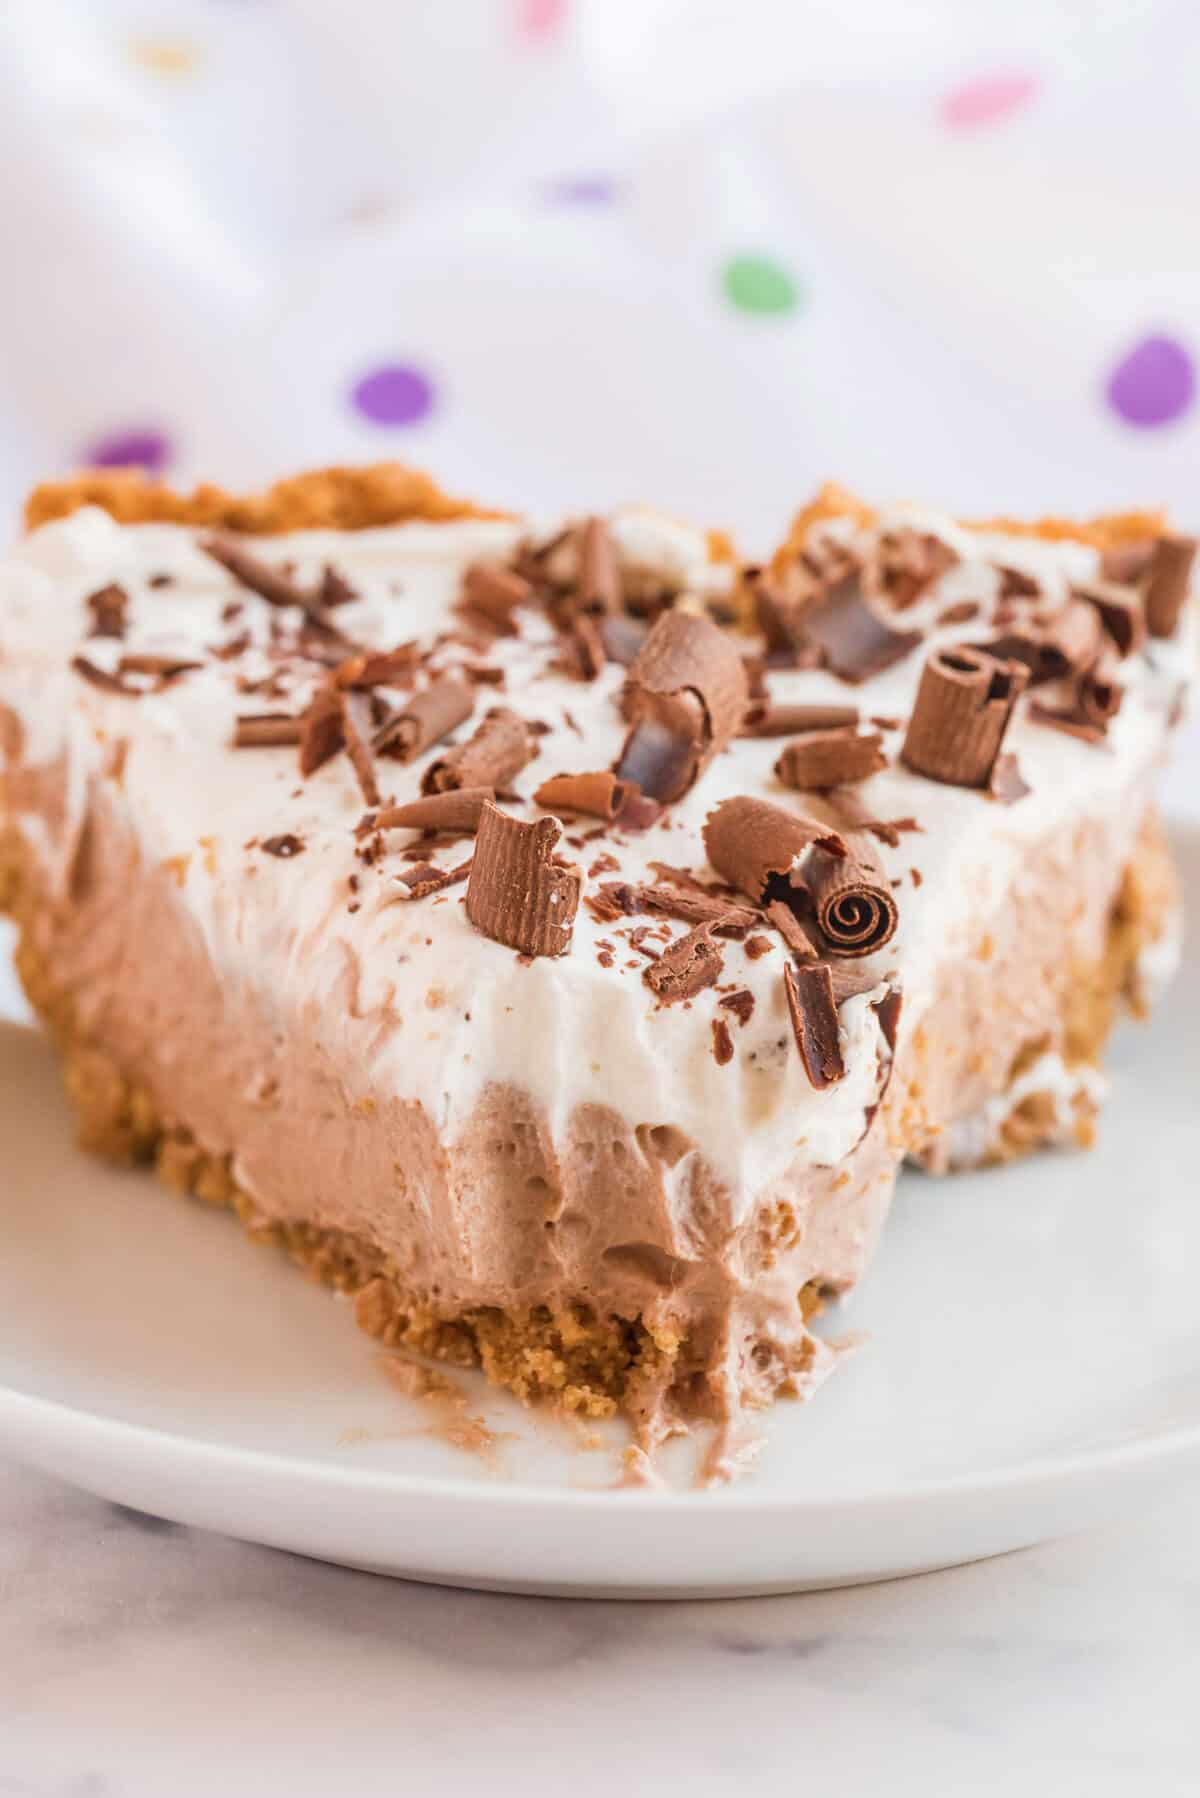 chocolate mousse pie with a forkful taken out of the slice